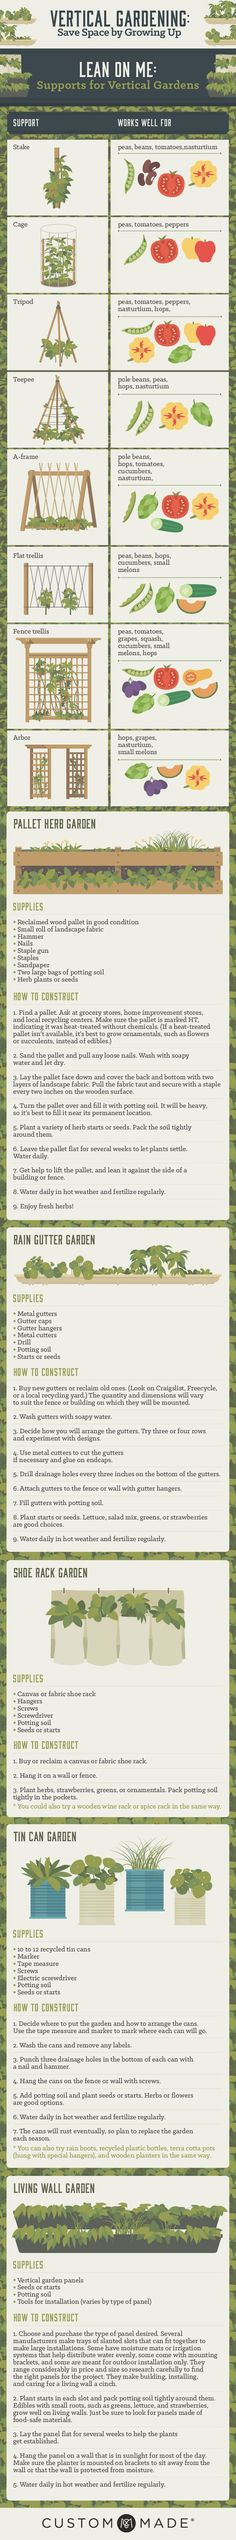 How To Urban Garden Learn how to grow a vertical garden. - Learn how to grow a vertical garden and master vertical gardening with this useful infographic. Vertical Vegetable Gardens, Veg Garden, Edible Garden, Garden Plants, Vegetable Gardening, Organic Gardening, Veggie Gardens, Gutter Garden, Urban Gardening